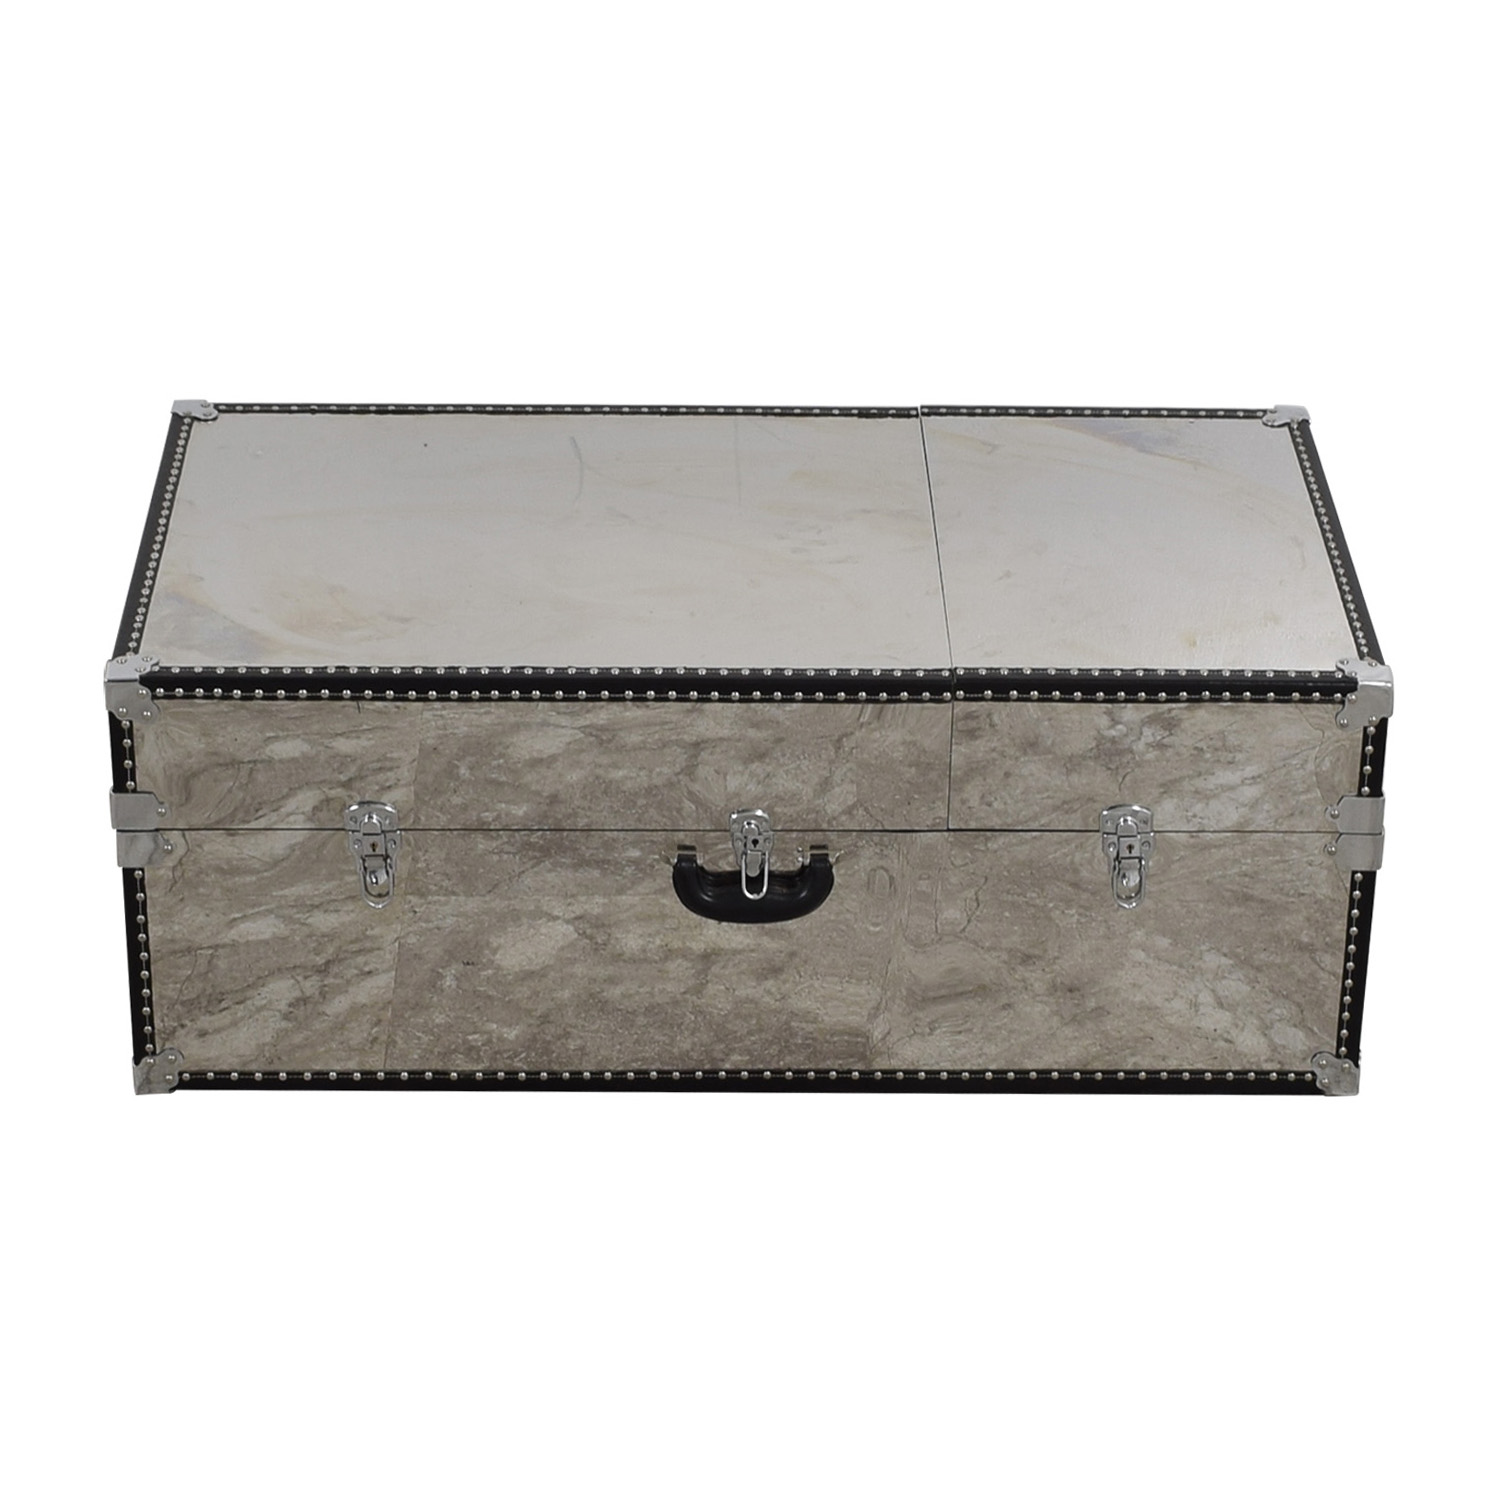 Mirrored Truck Coffee Table with Storage on sale